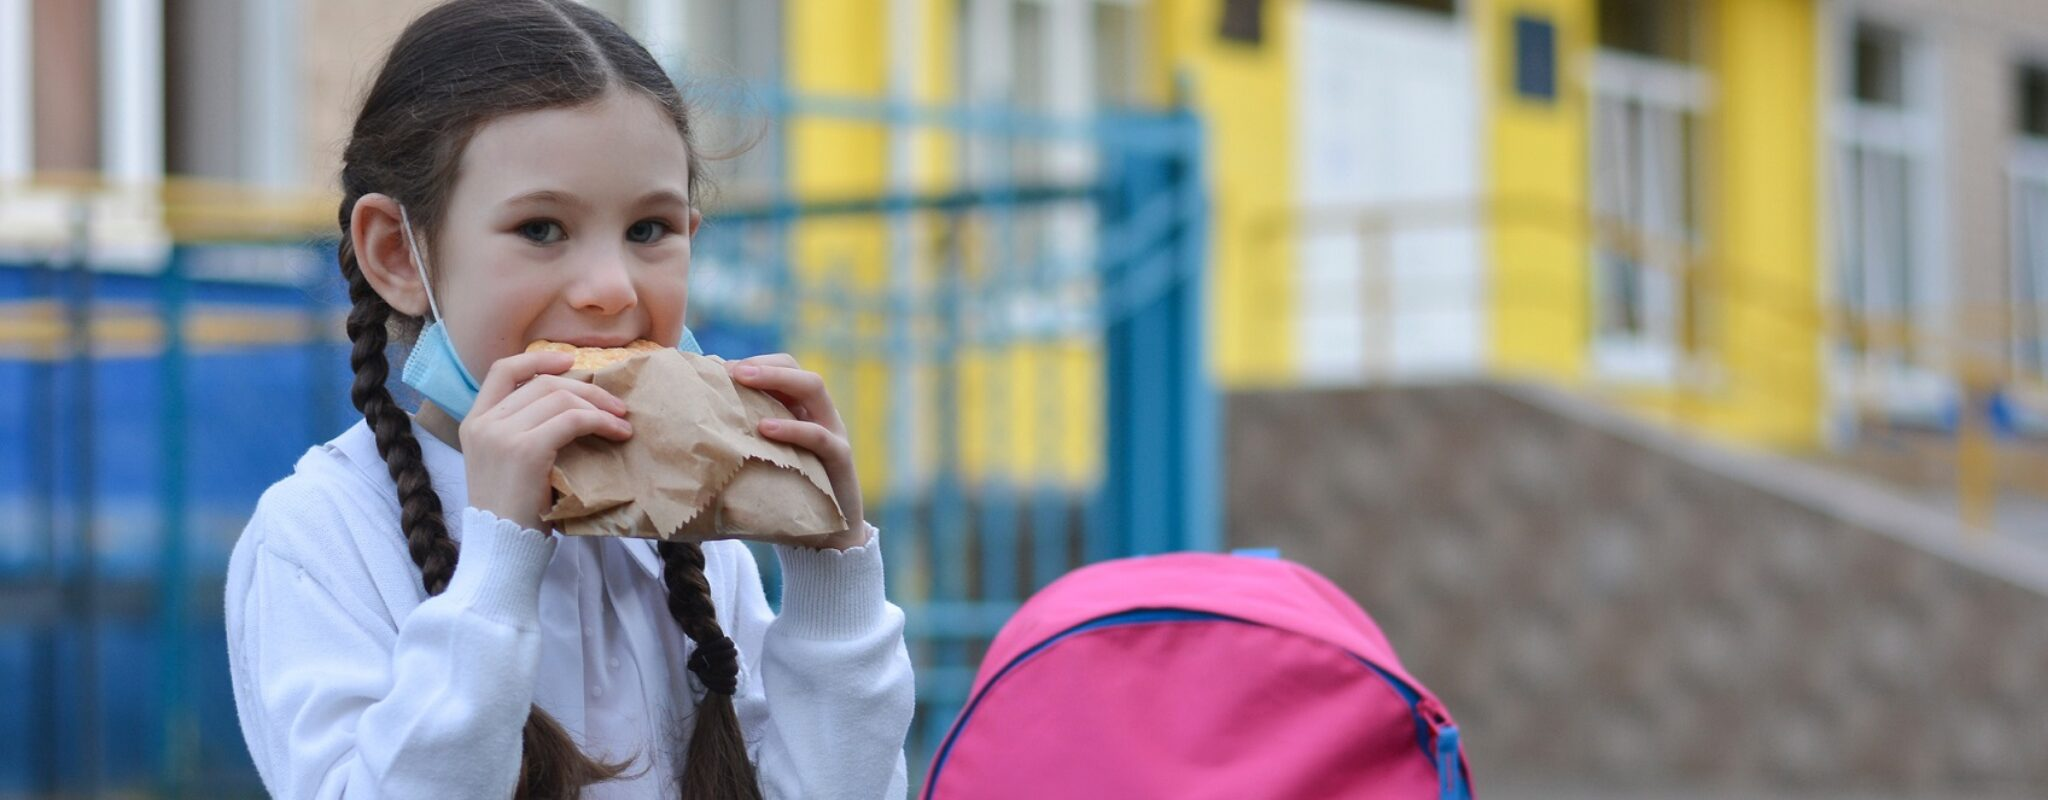 Help for Hungry Children - Summer Food Program and School Meals